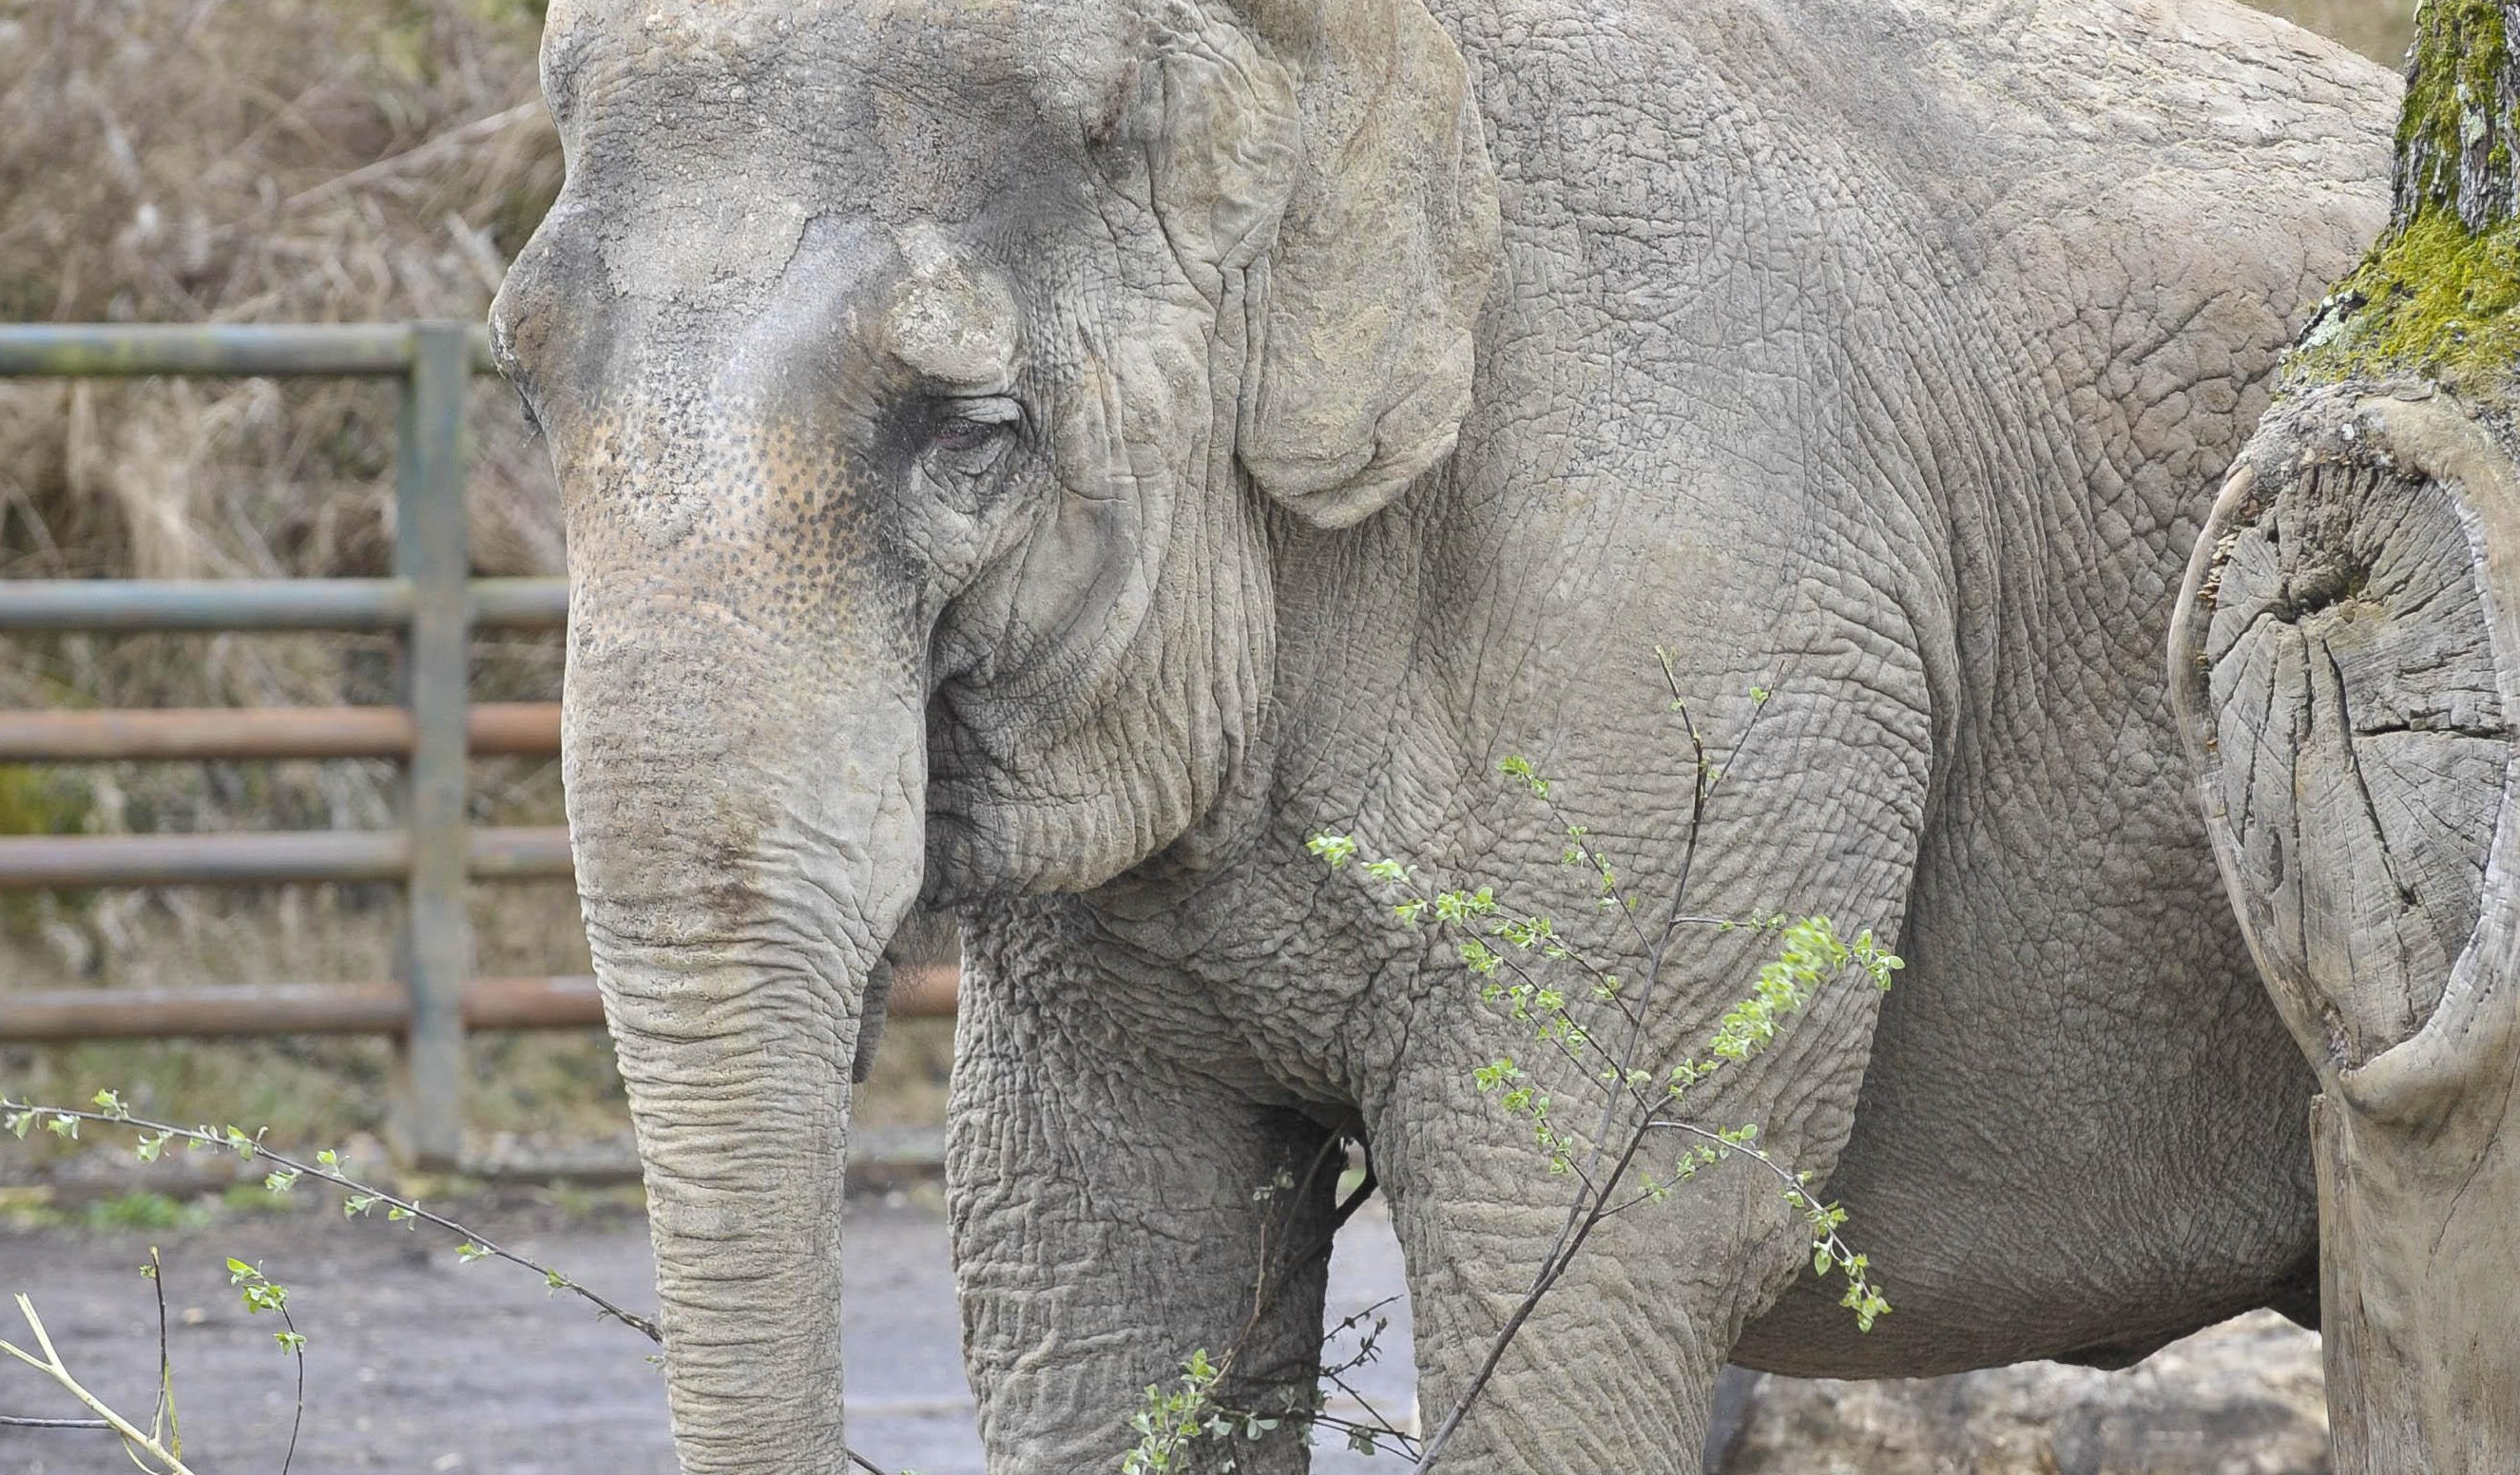 Anne the rescued elephant in her enclosure at Longleat Safari Park (PA Archive)